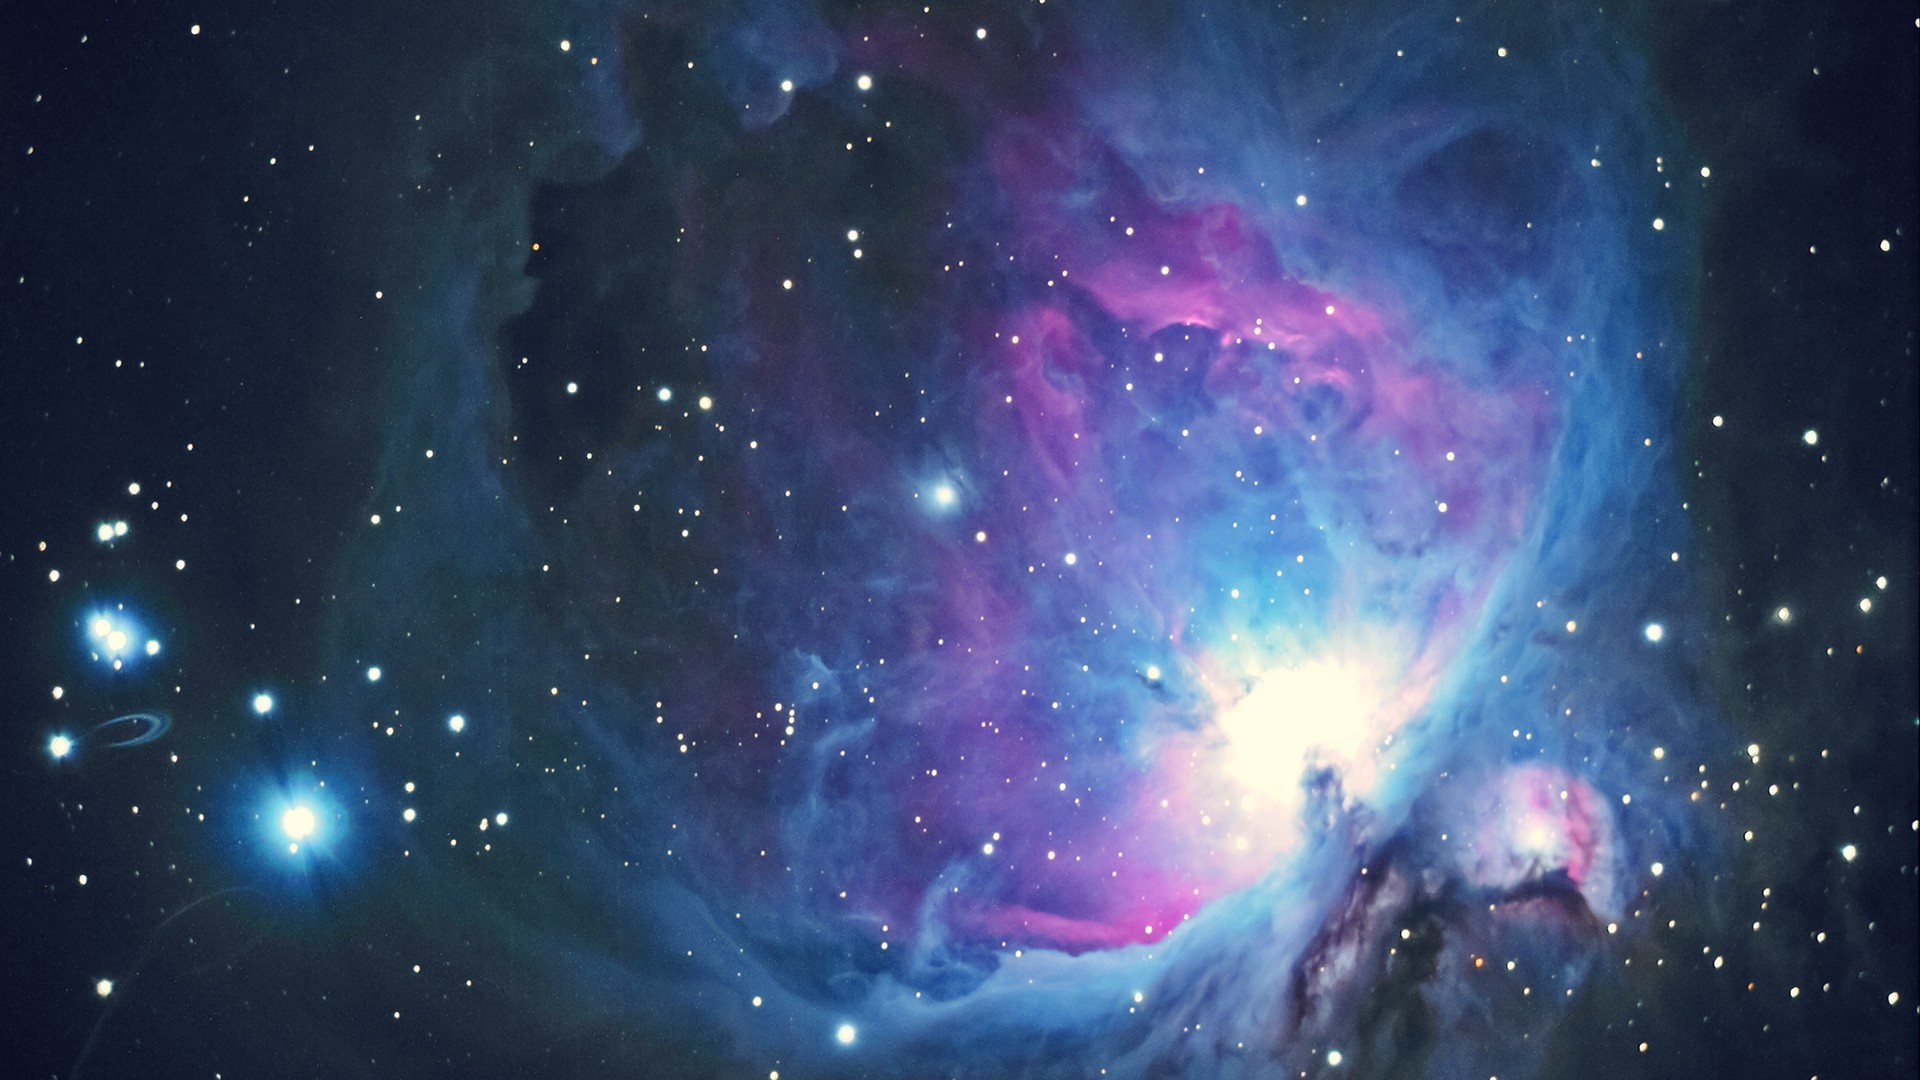 Outer Space Wallpaper Cool 50r3296v Yoanu 1920x1080